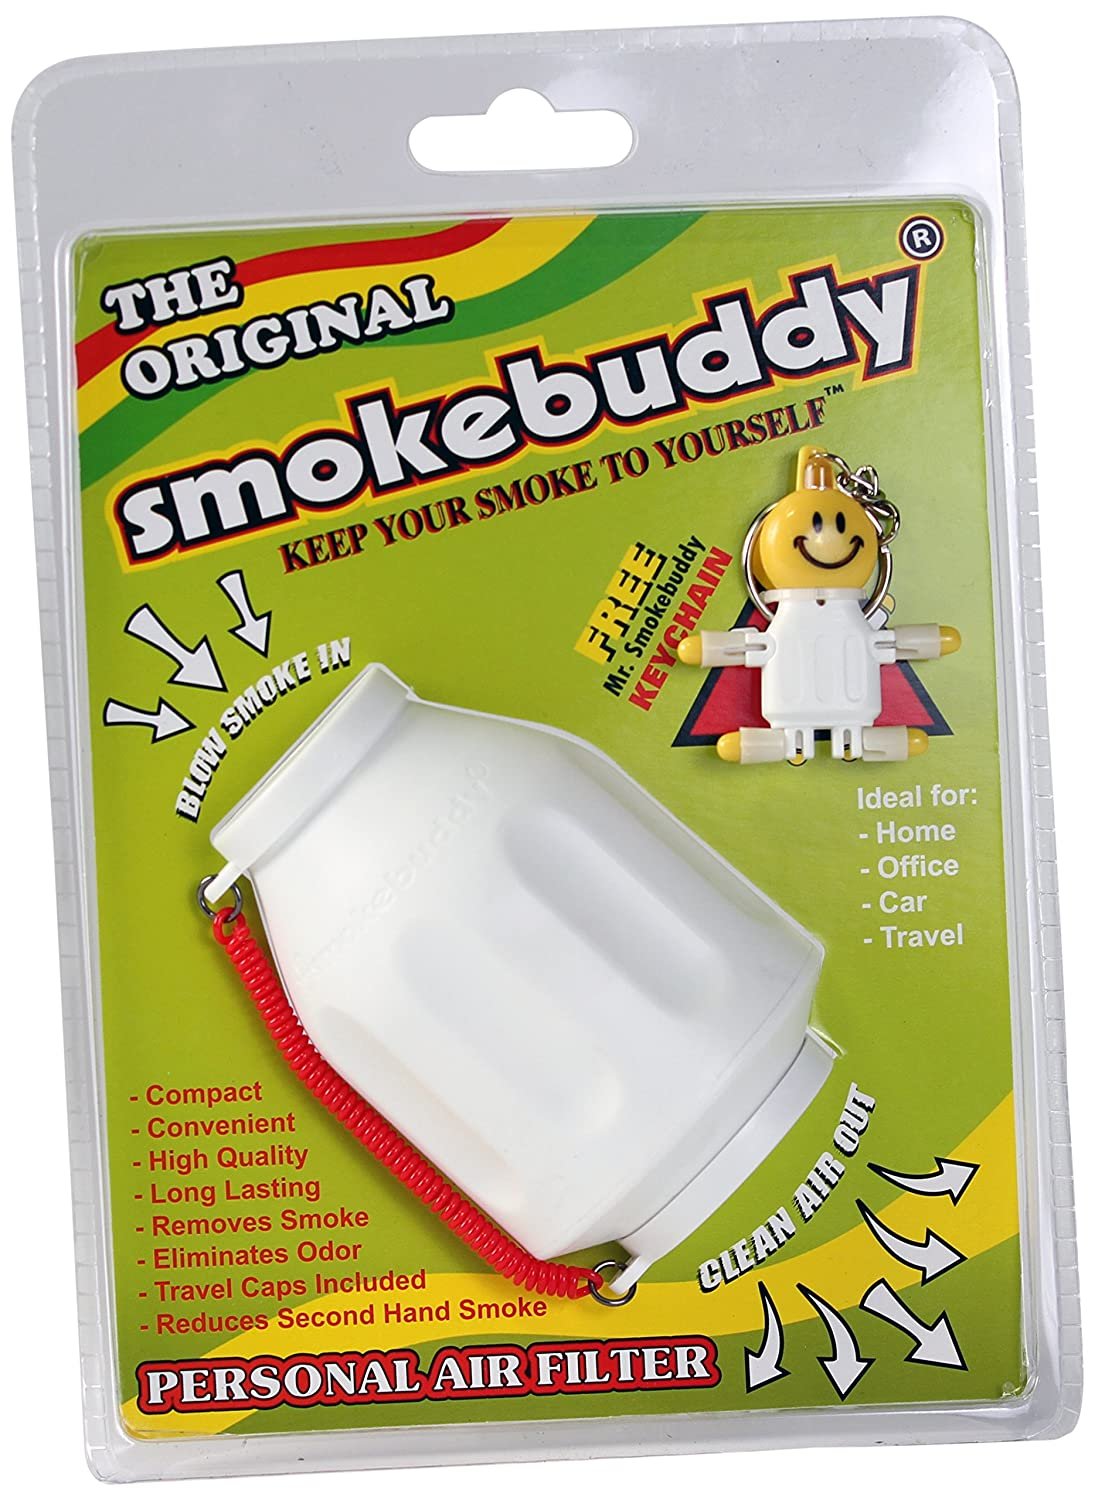 Smoke Buddy 0159-WHT Personal Air Filter, White by smokebuddy smokebuddy?